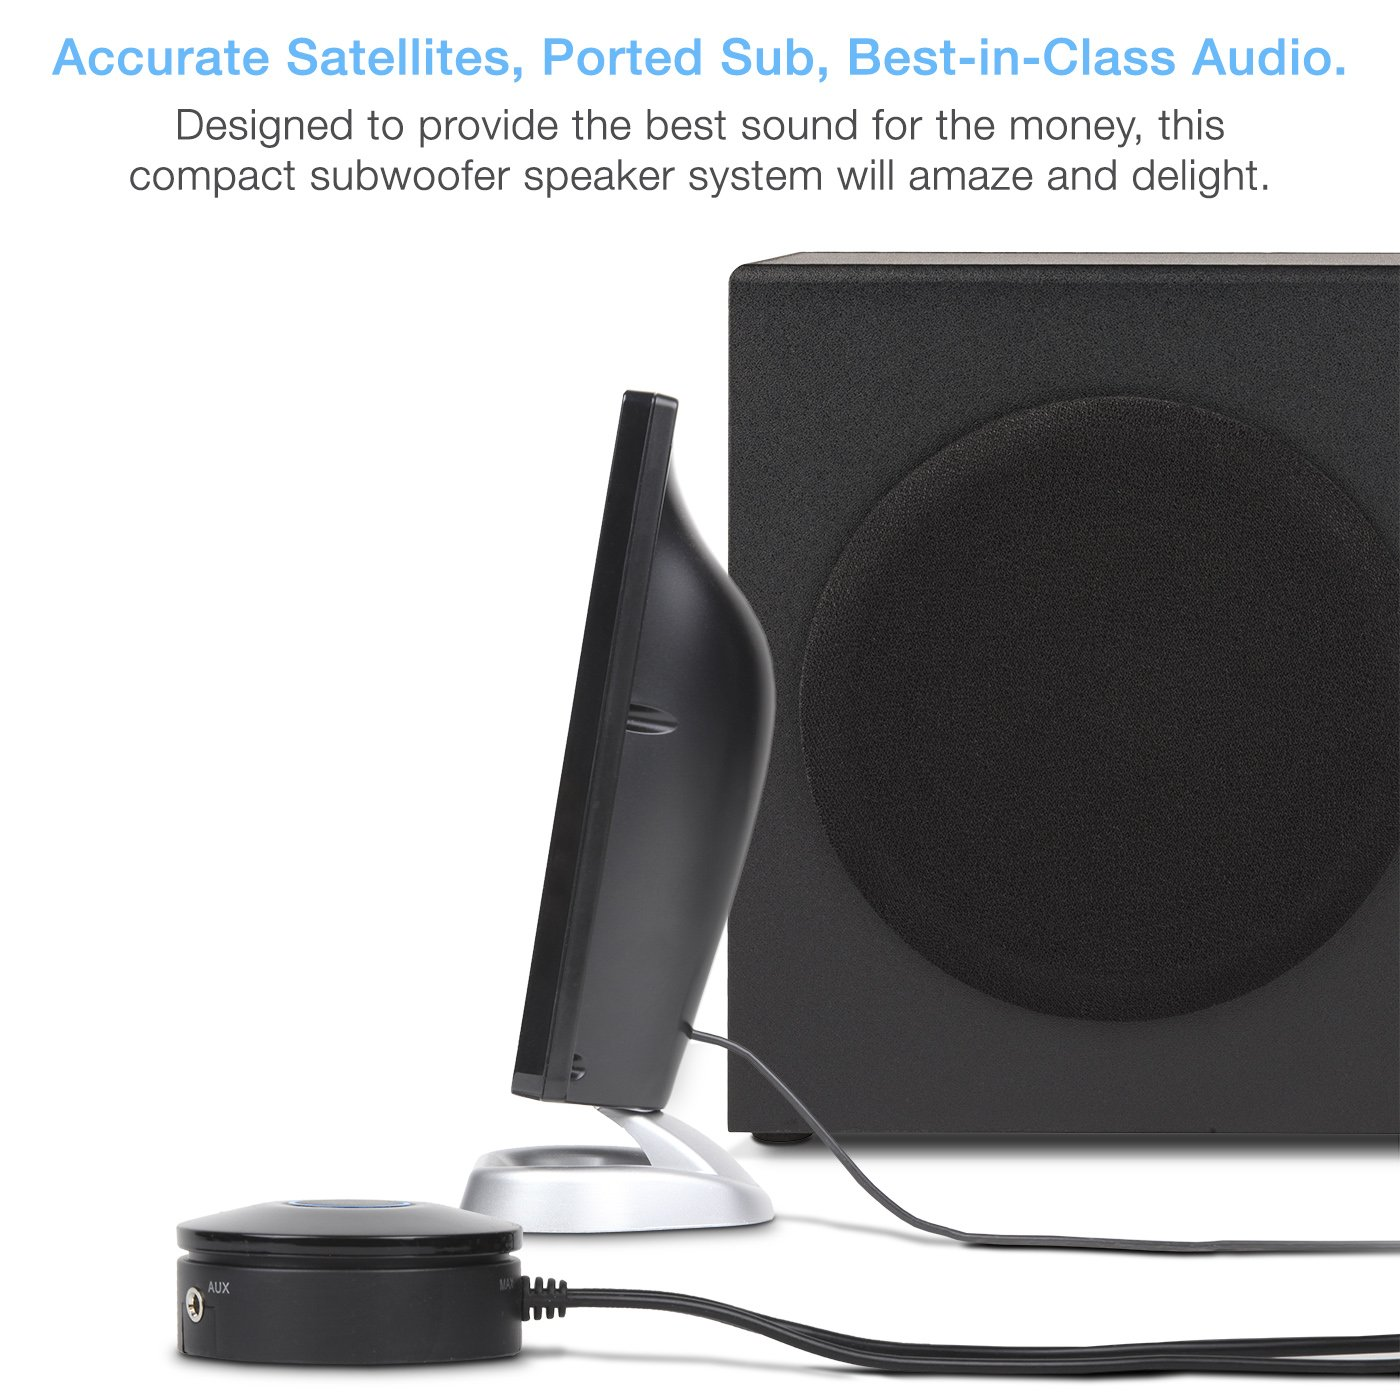 Cyber Acoustics 2.1 Subwoofer Speaker System with 18W of Power – Great for Music, Movies, Gaming, and Multimedia Computer Laptops (CA-3090) by Cyber Acoustics (Image #5)